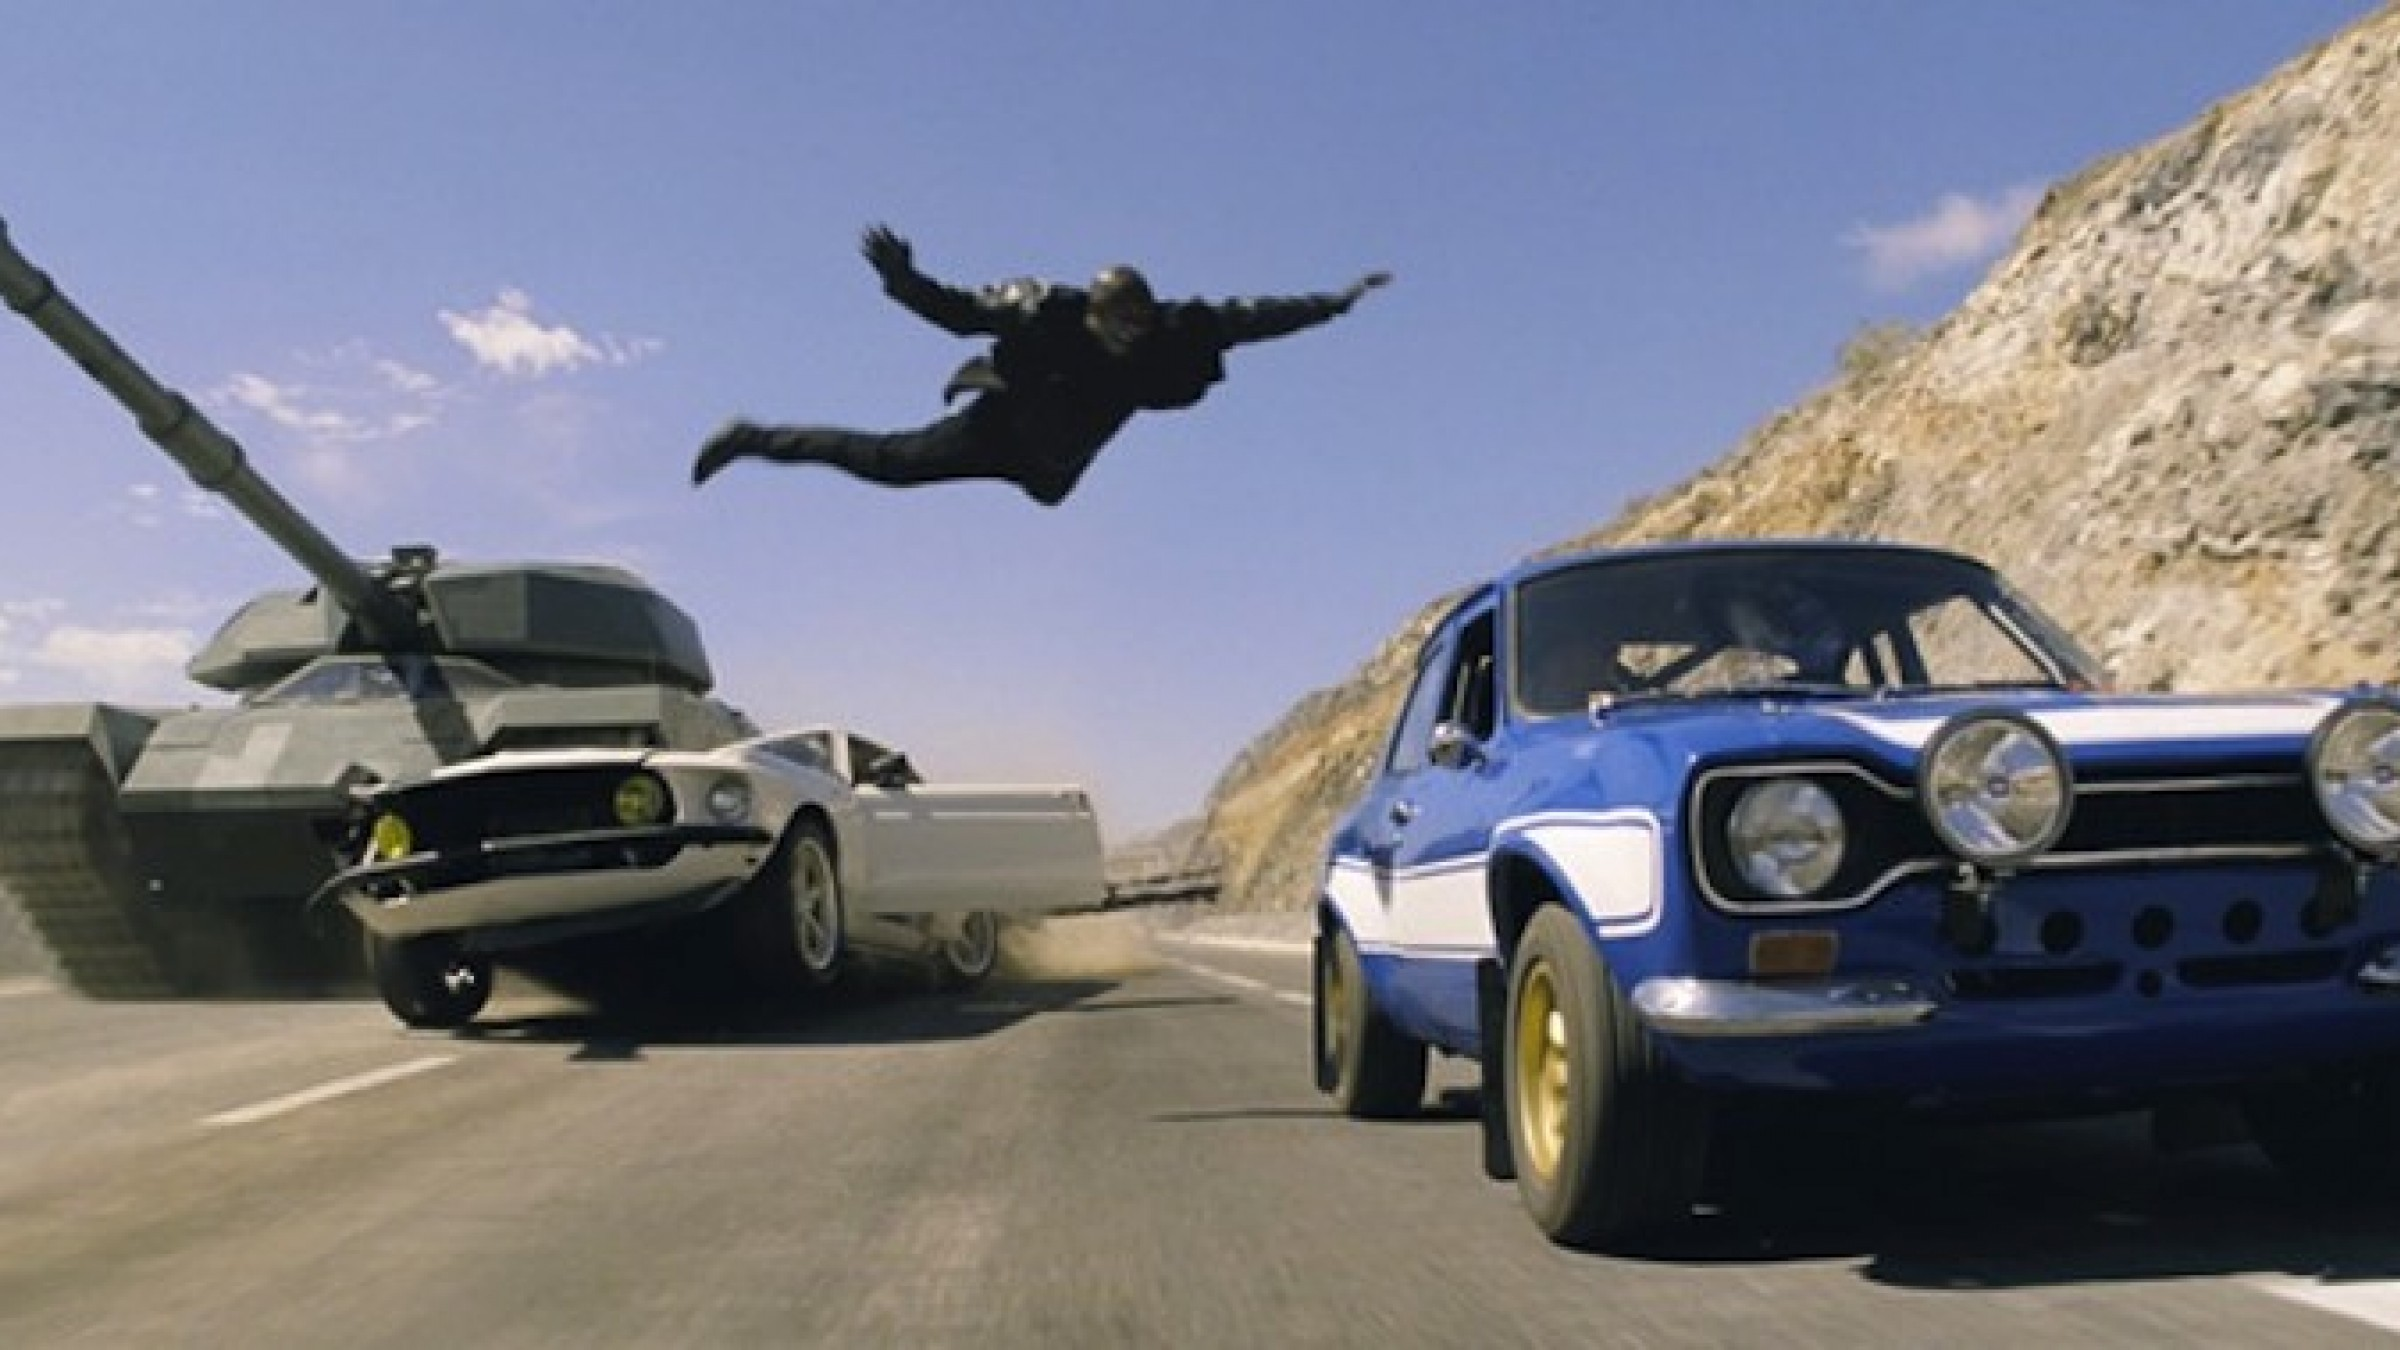 Nuts And Bolts Of A Car Chase What Goes Into Creating A Fast And - Behind the scenes fast and furious 7 stunts